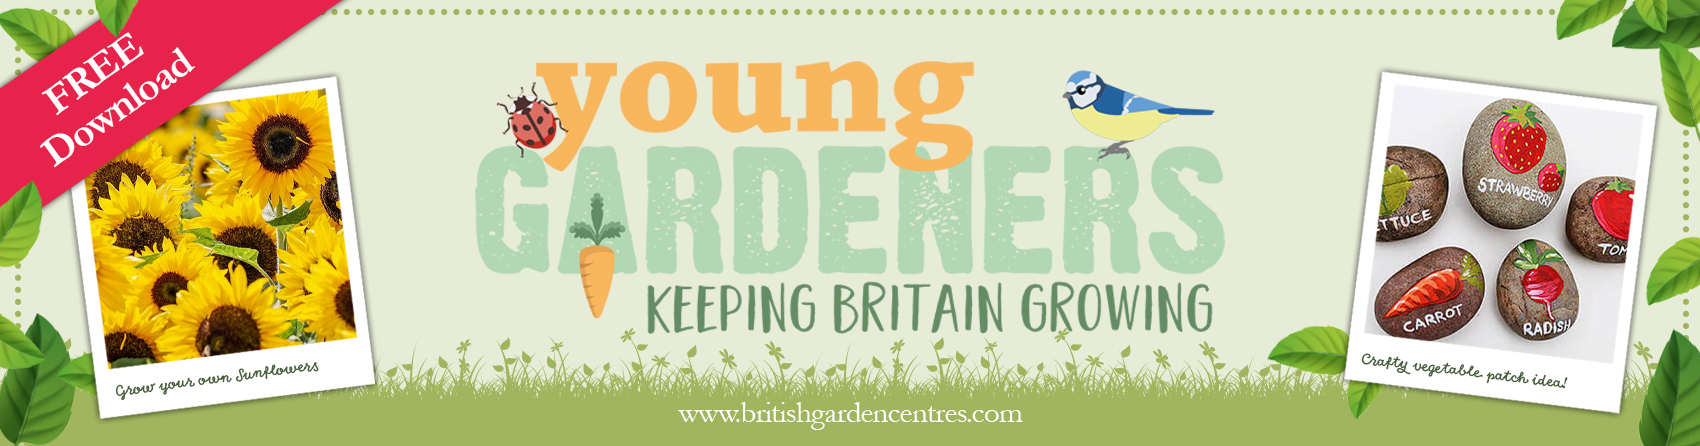 BGC web banner - young gardeners MAY